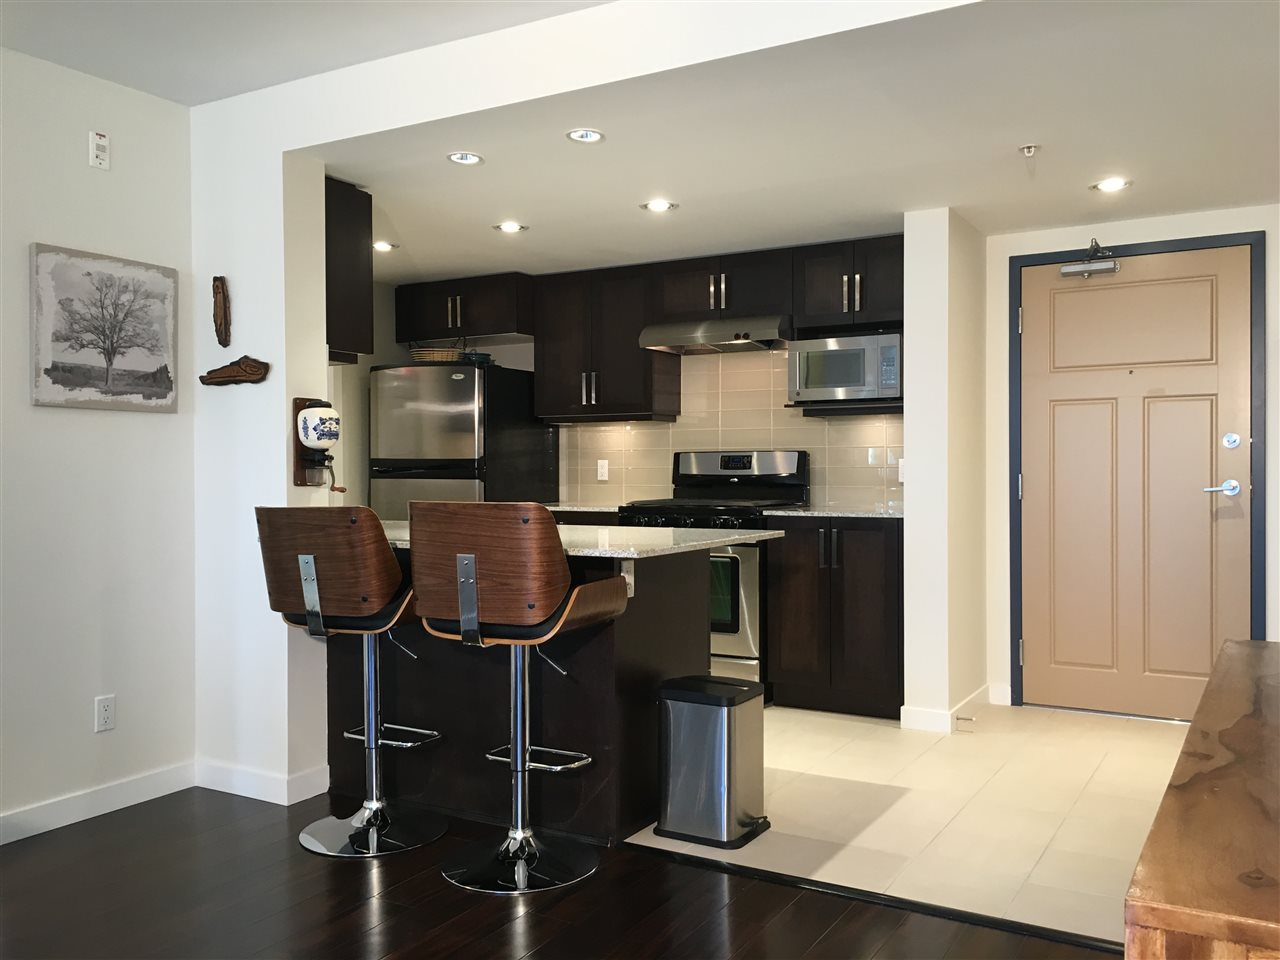 Sensible tile in entry and kitchen laundry. Social eating Bar is a perfect spot to perch!